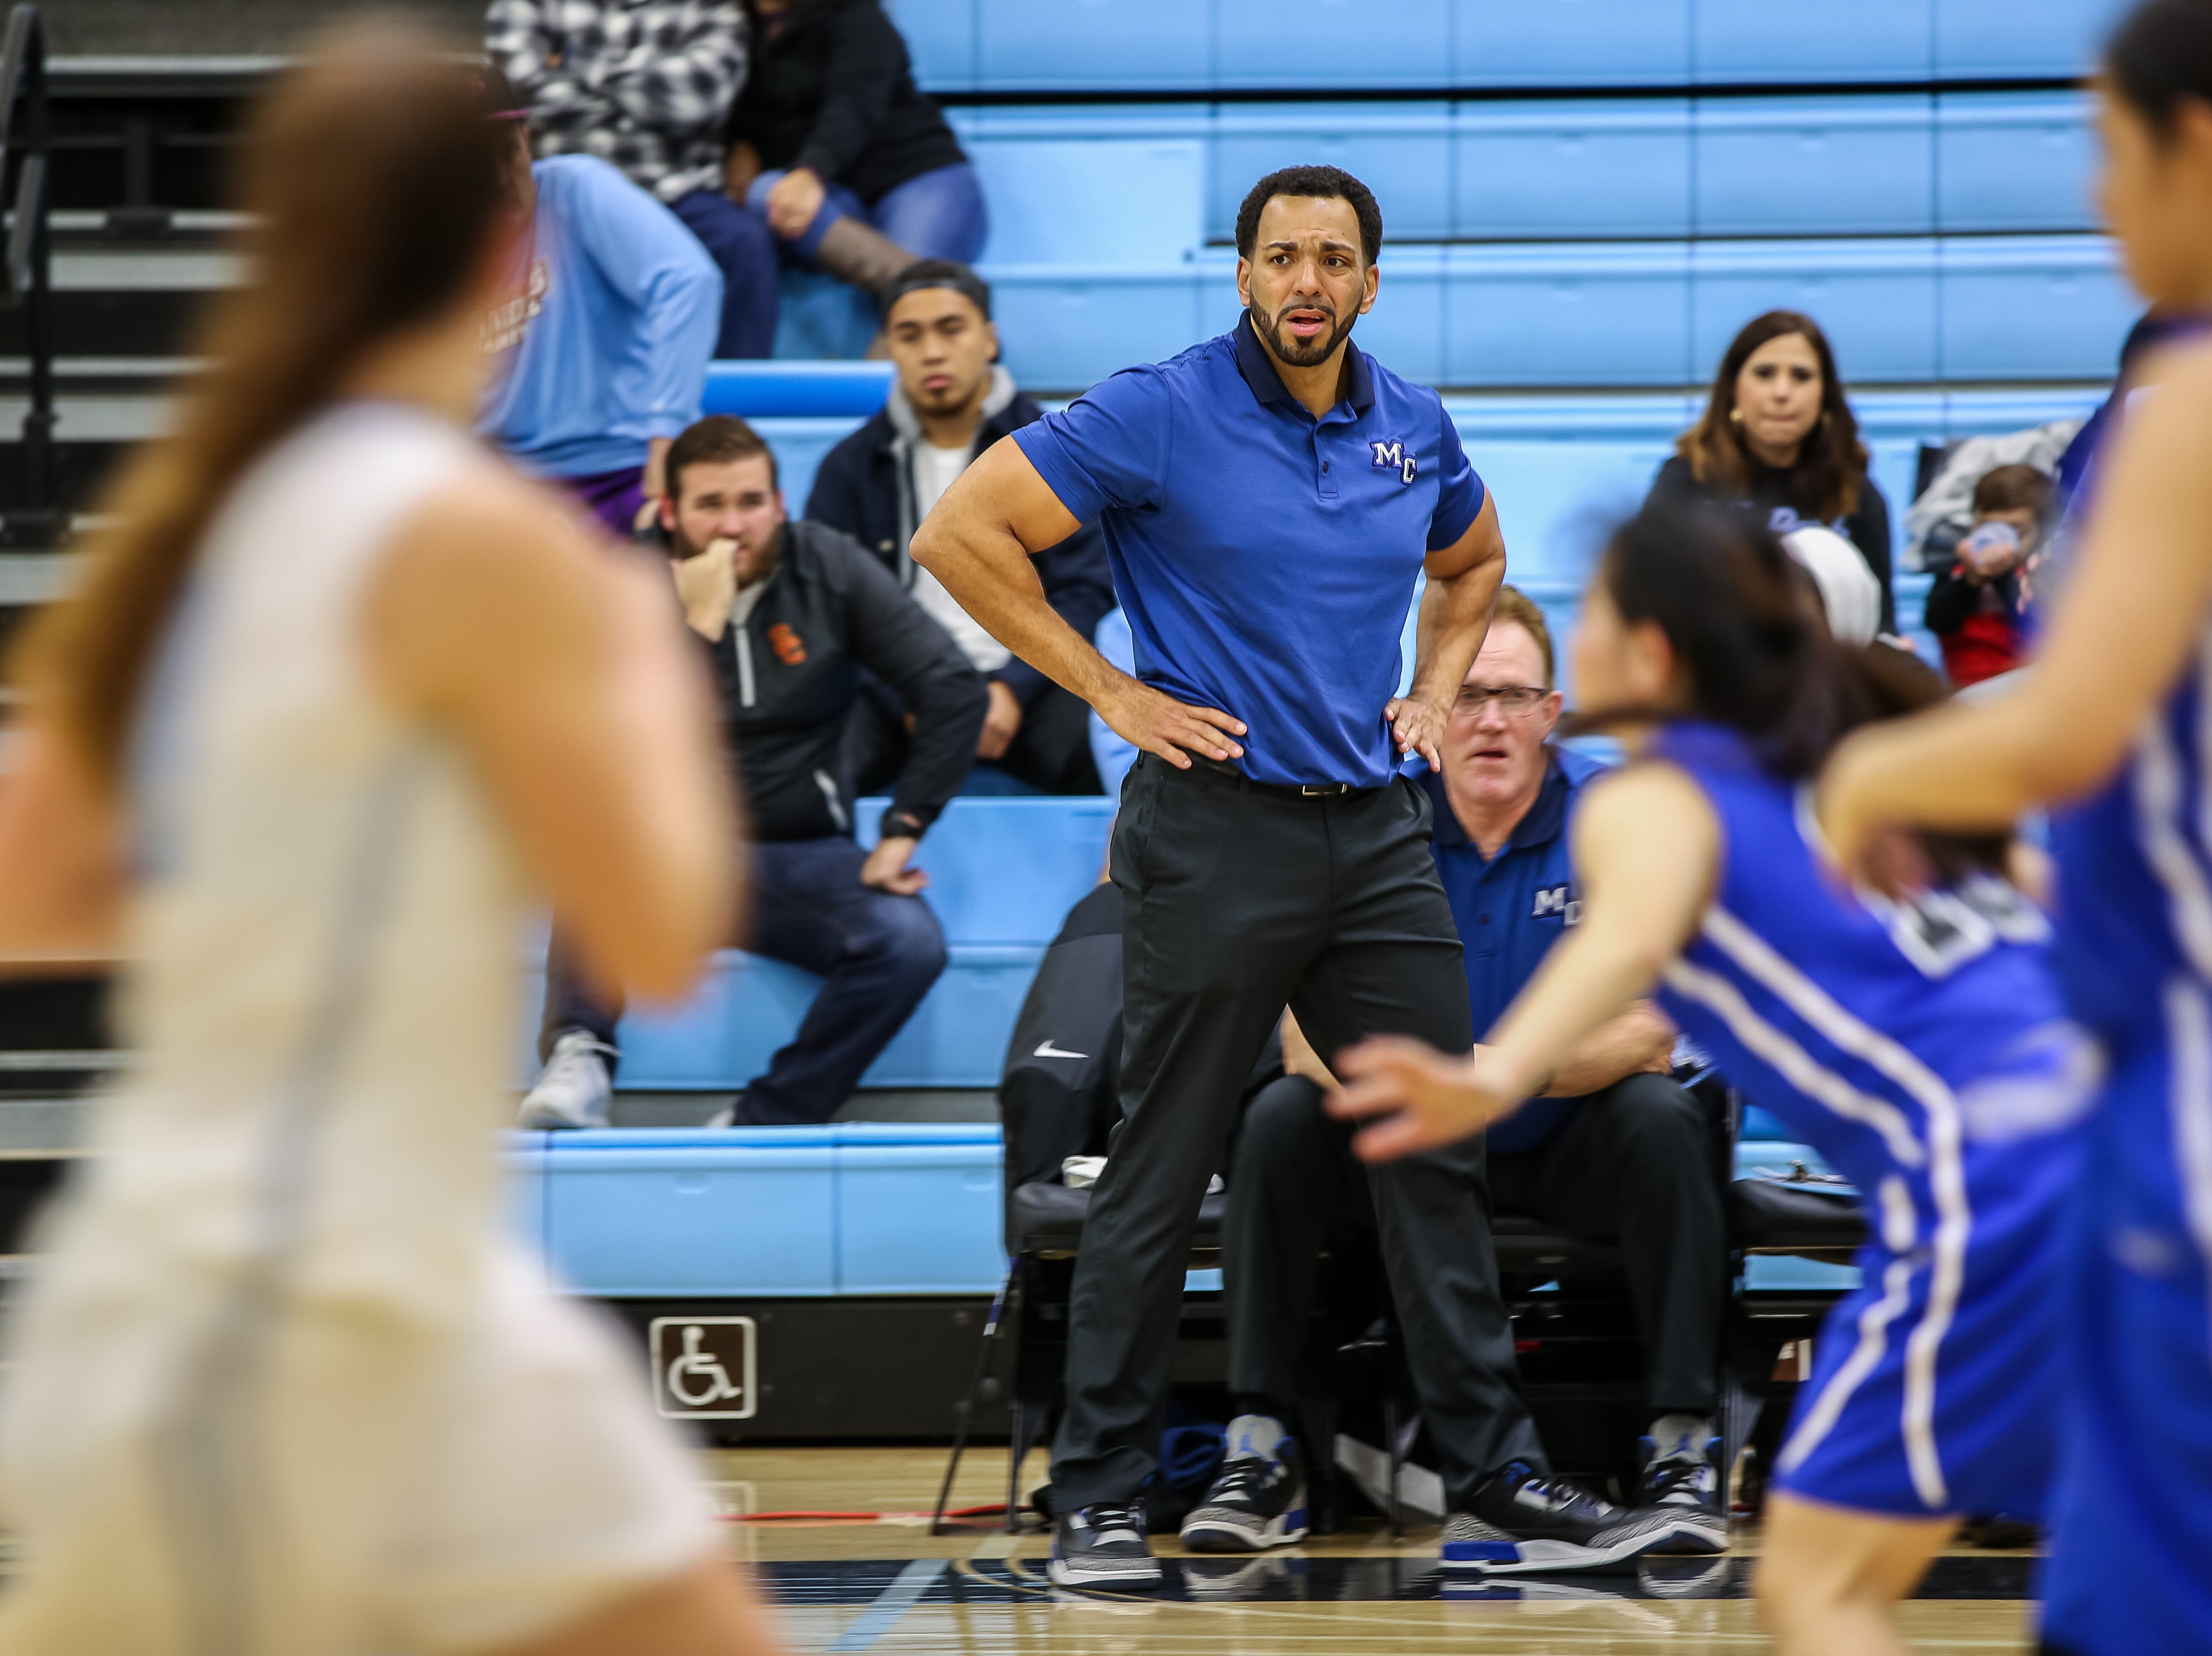 Moorpark College head coach Kenny Plummer reacts as his team brings the ball up court after giving up a basket during the Raiders' 86-56 win over Cerritos in a Southern California regional semifinal game Saturday night at Moorpark College.